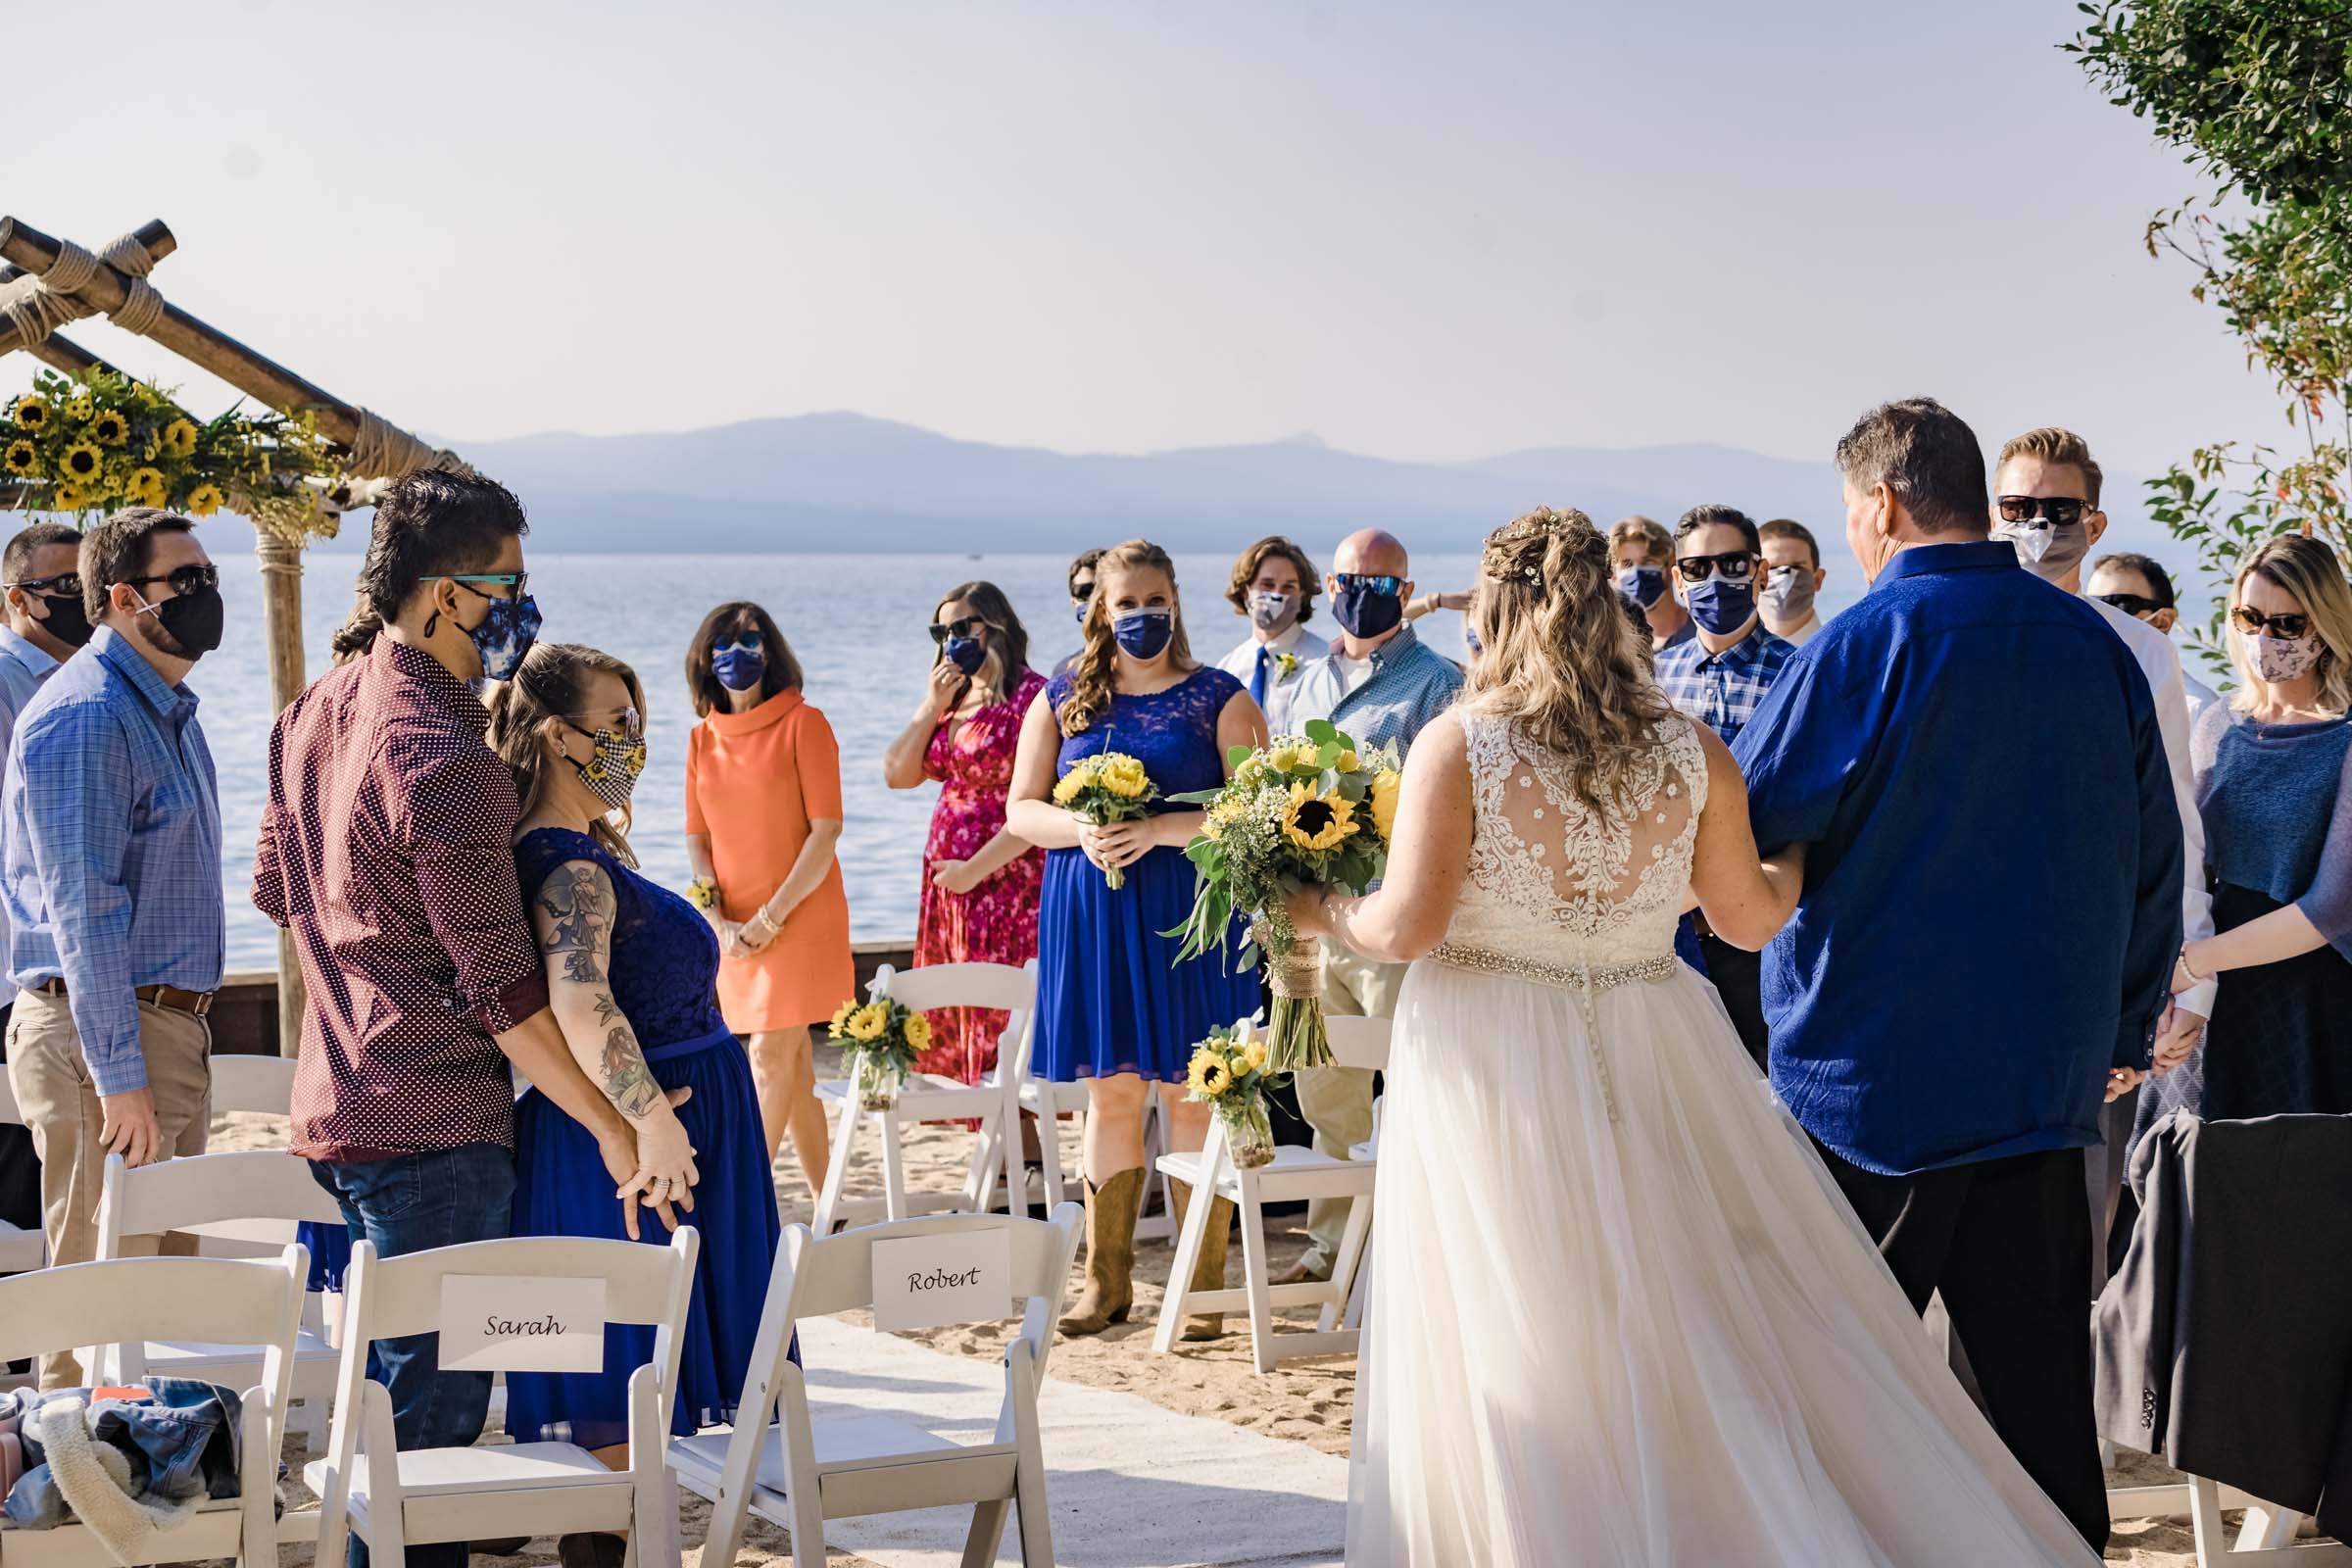 Wedding ceremony at Lakeside Beach in South Lake Tahoe